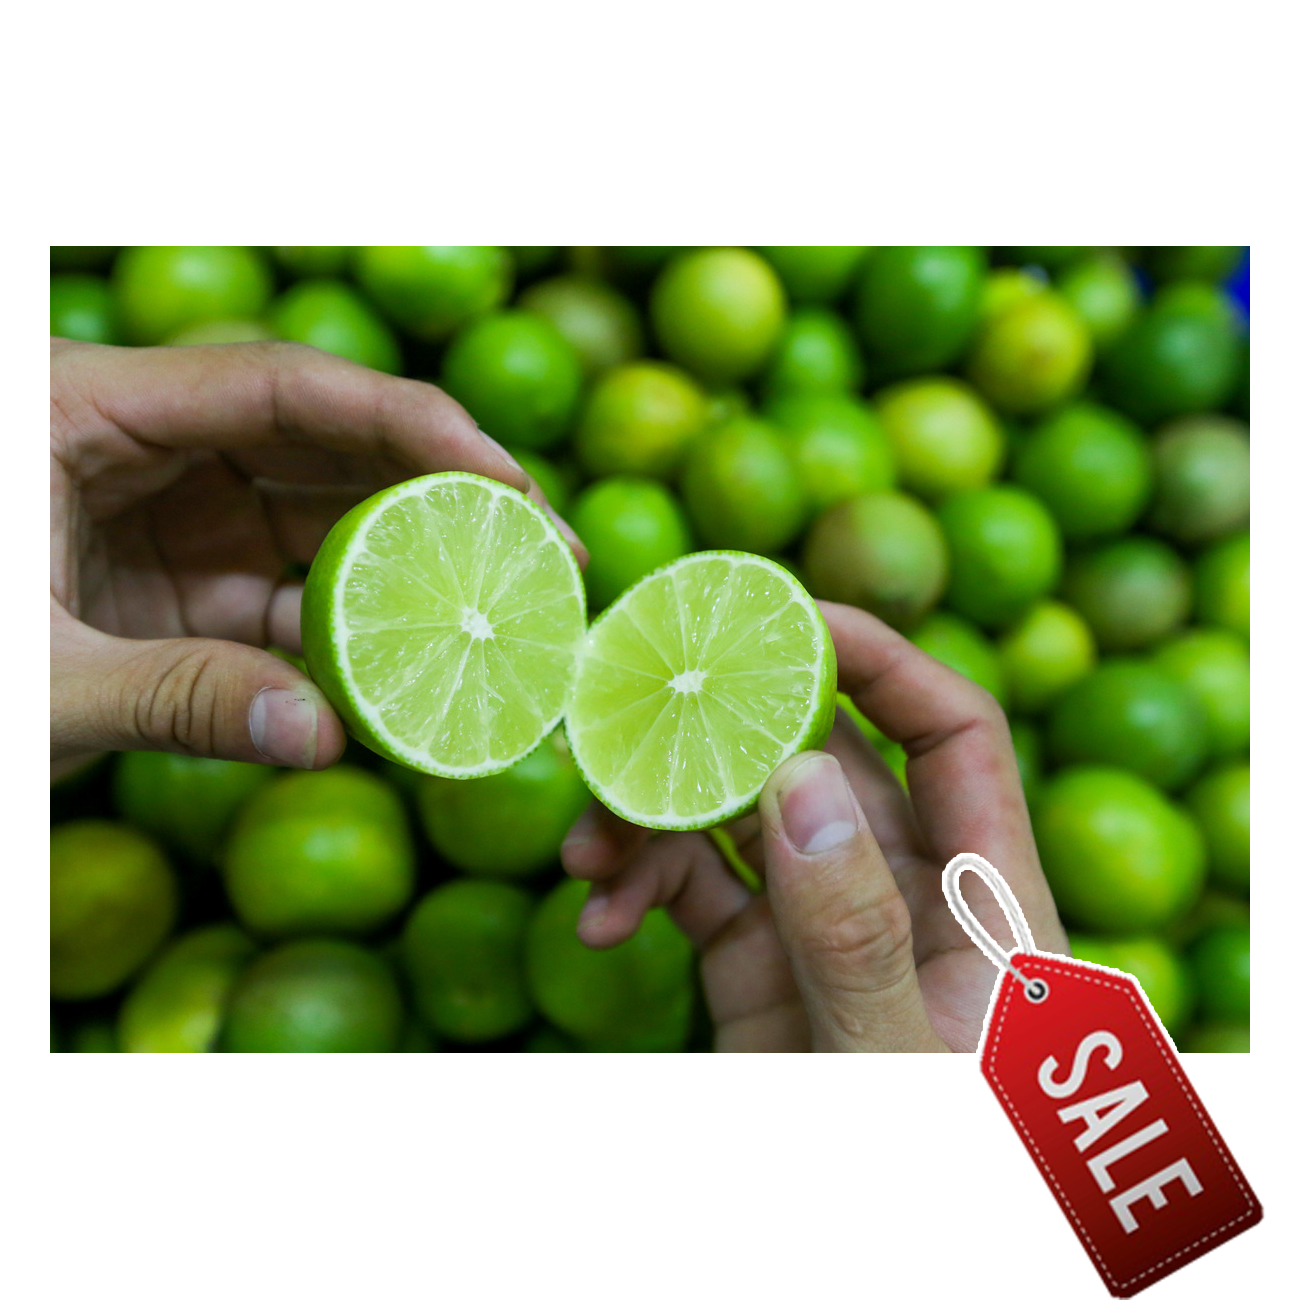 2021| 15% PRICE OFF Fresh Seedless Lime Lemon | Vietnam Agricultural Export Products | Cheap Price for Buy in Bulk | Inquiry Now